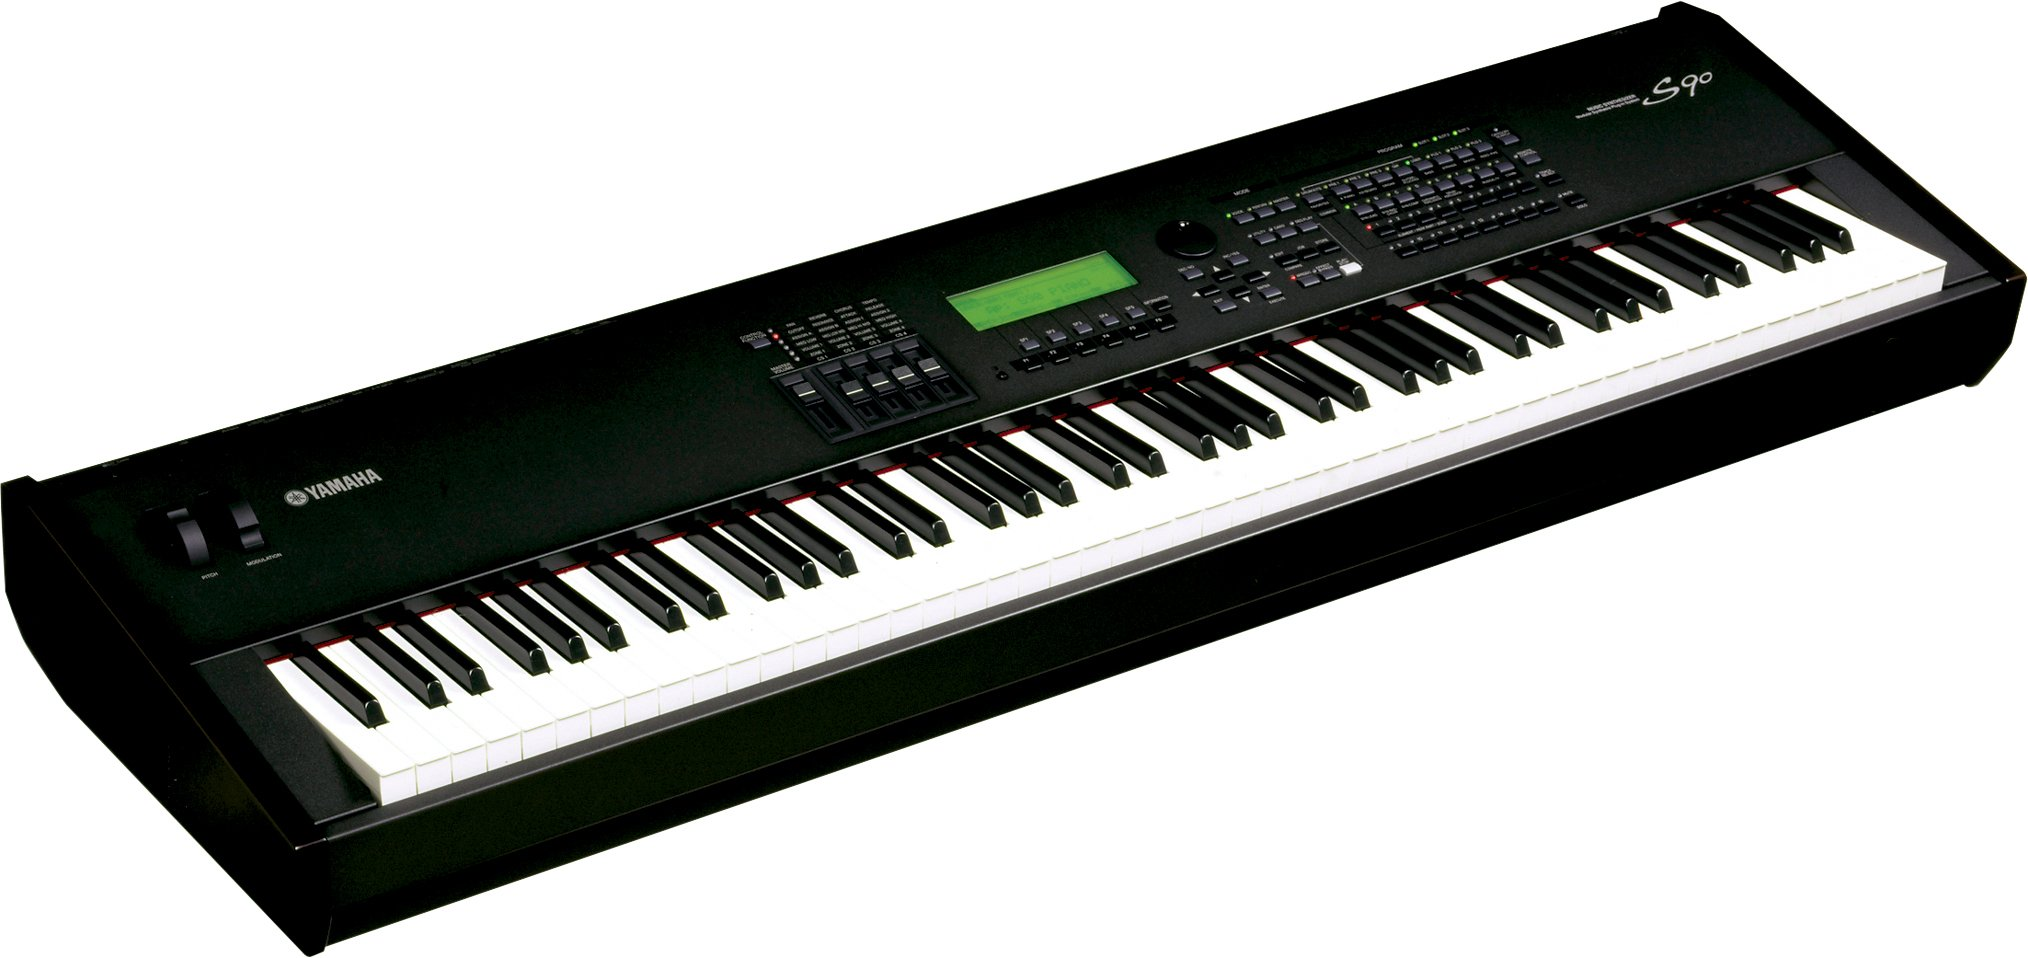 Yamaha S90 Keyboard (88keys) Image